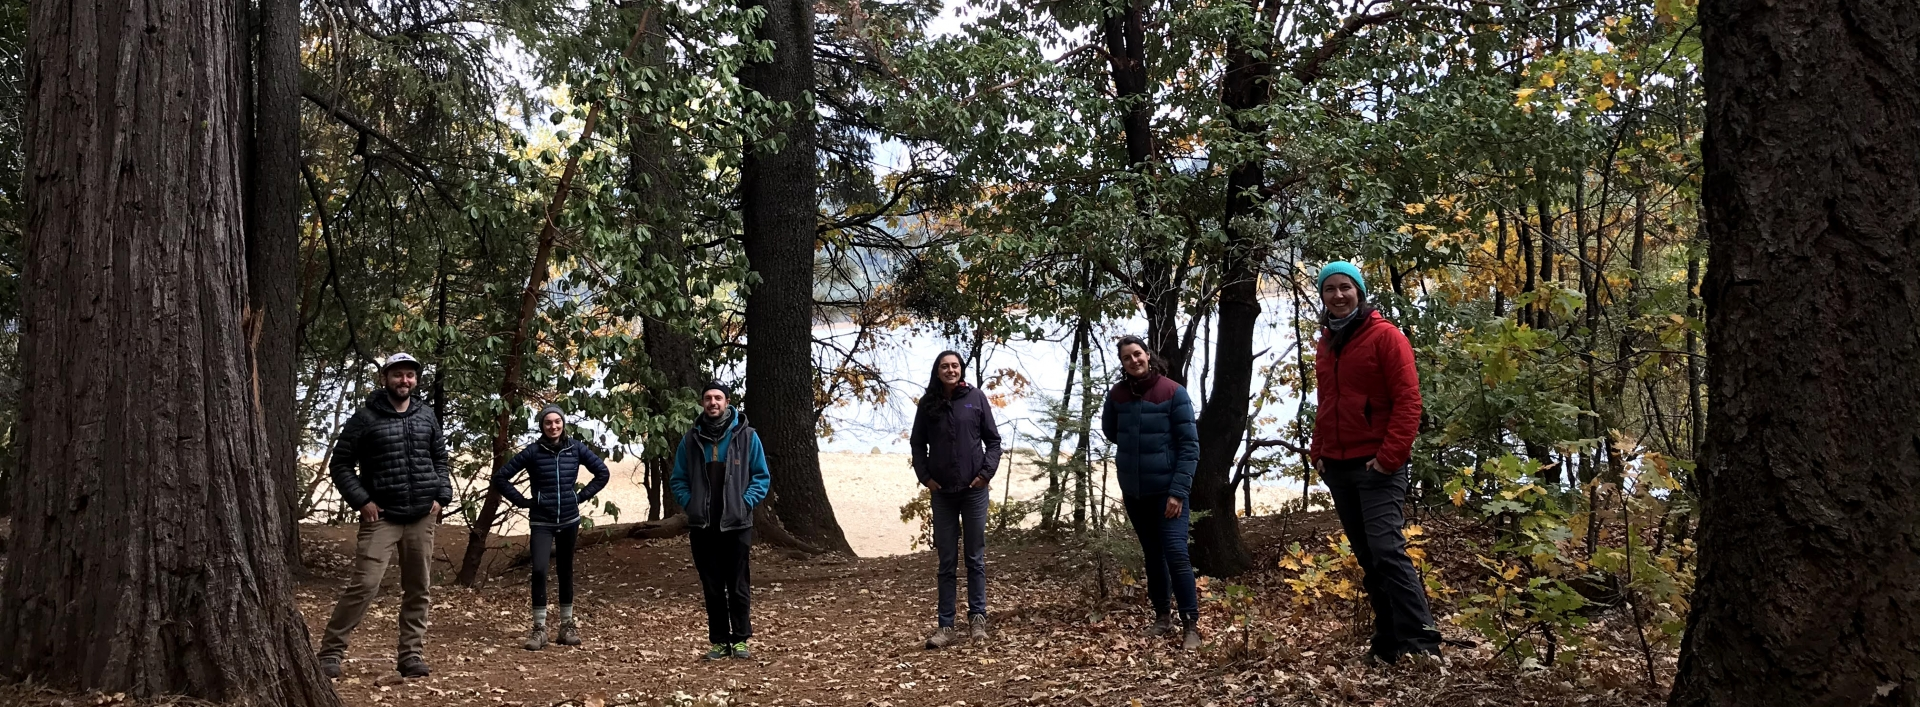 A group of 6 students stands in a clearing in the woods